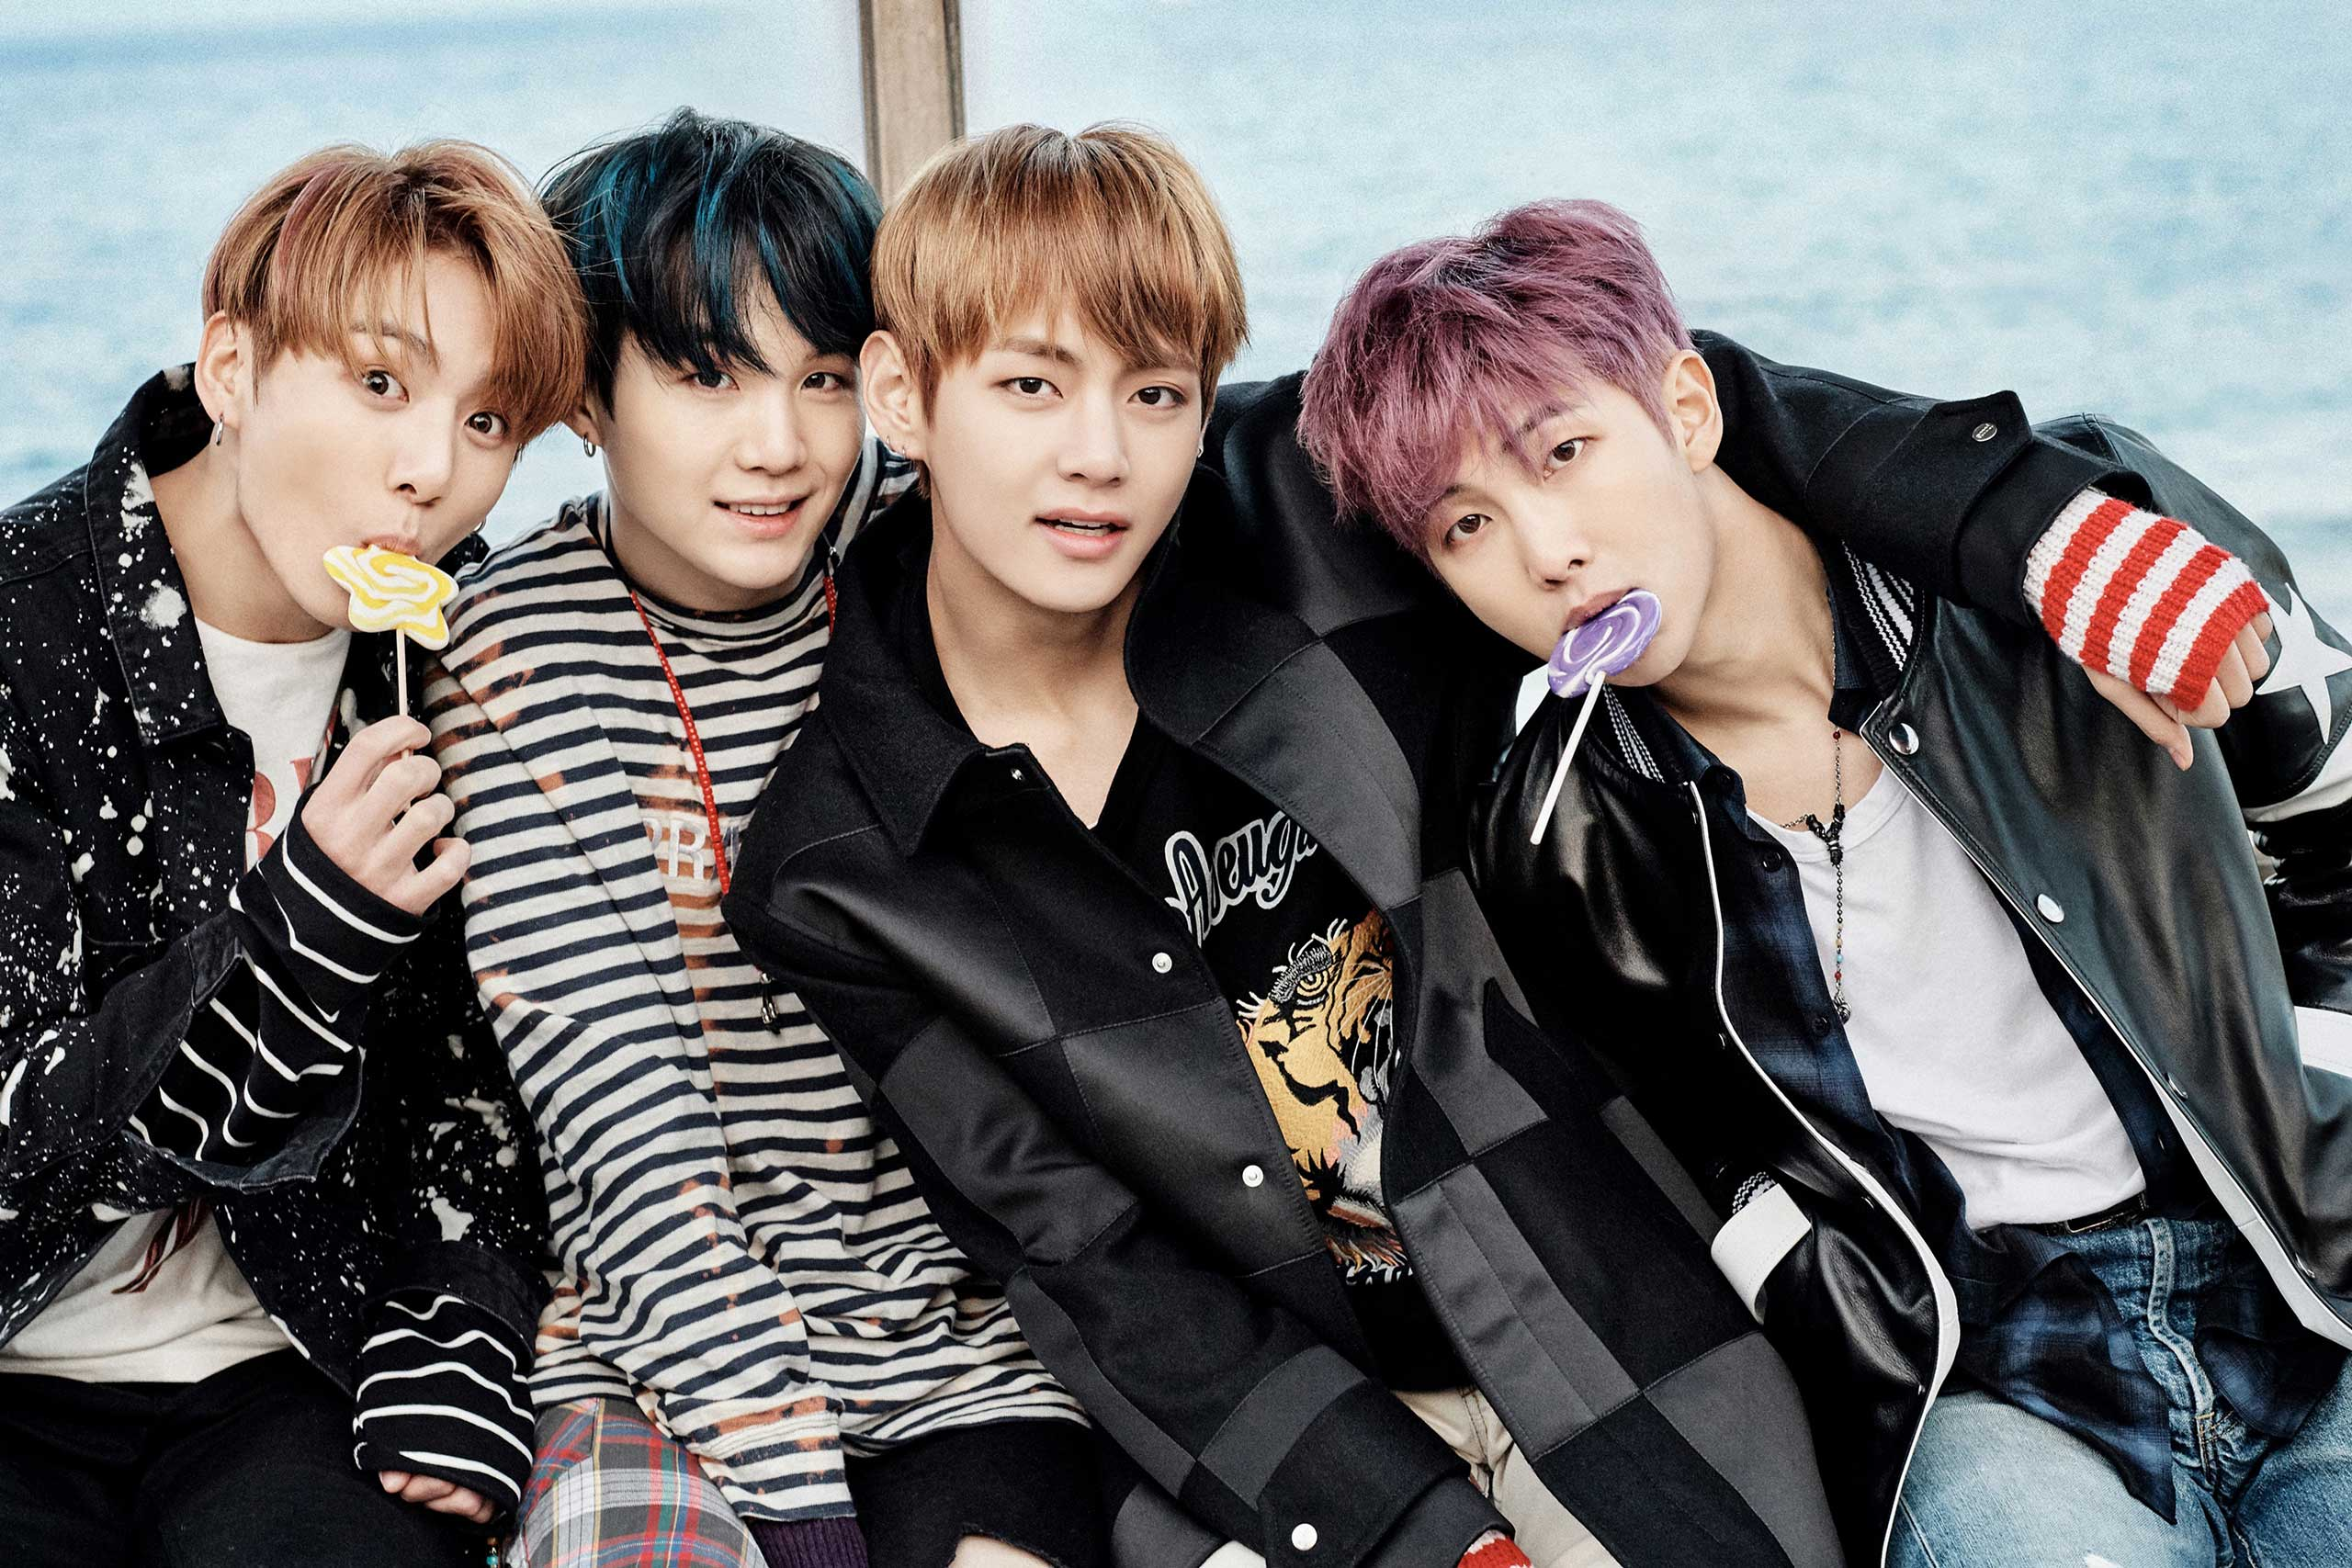 Bts chills at a bus stop in new set of teaser images wtk stopboris Choice Image